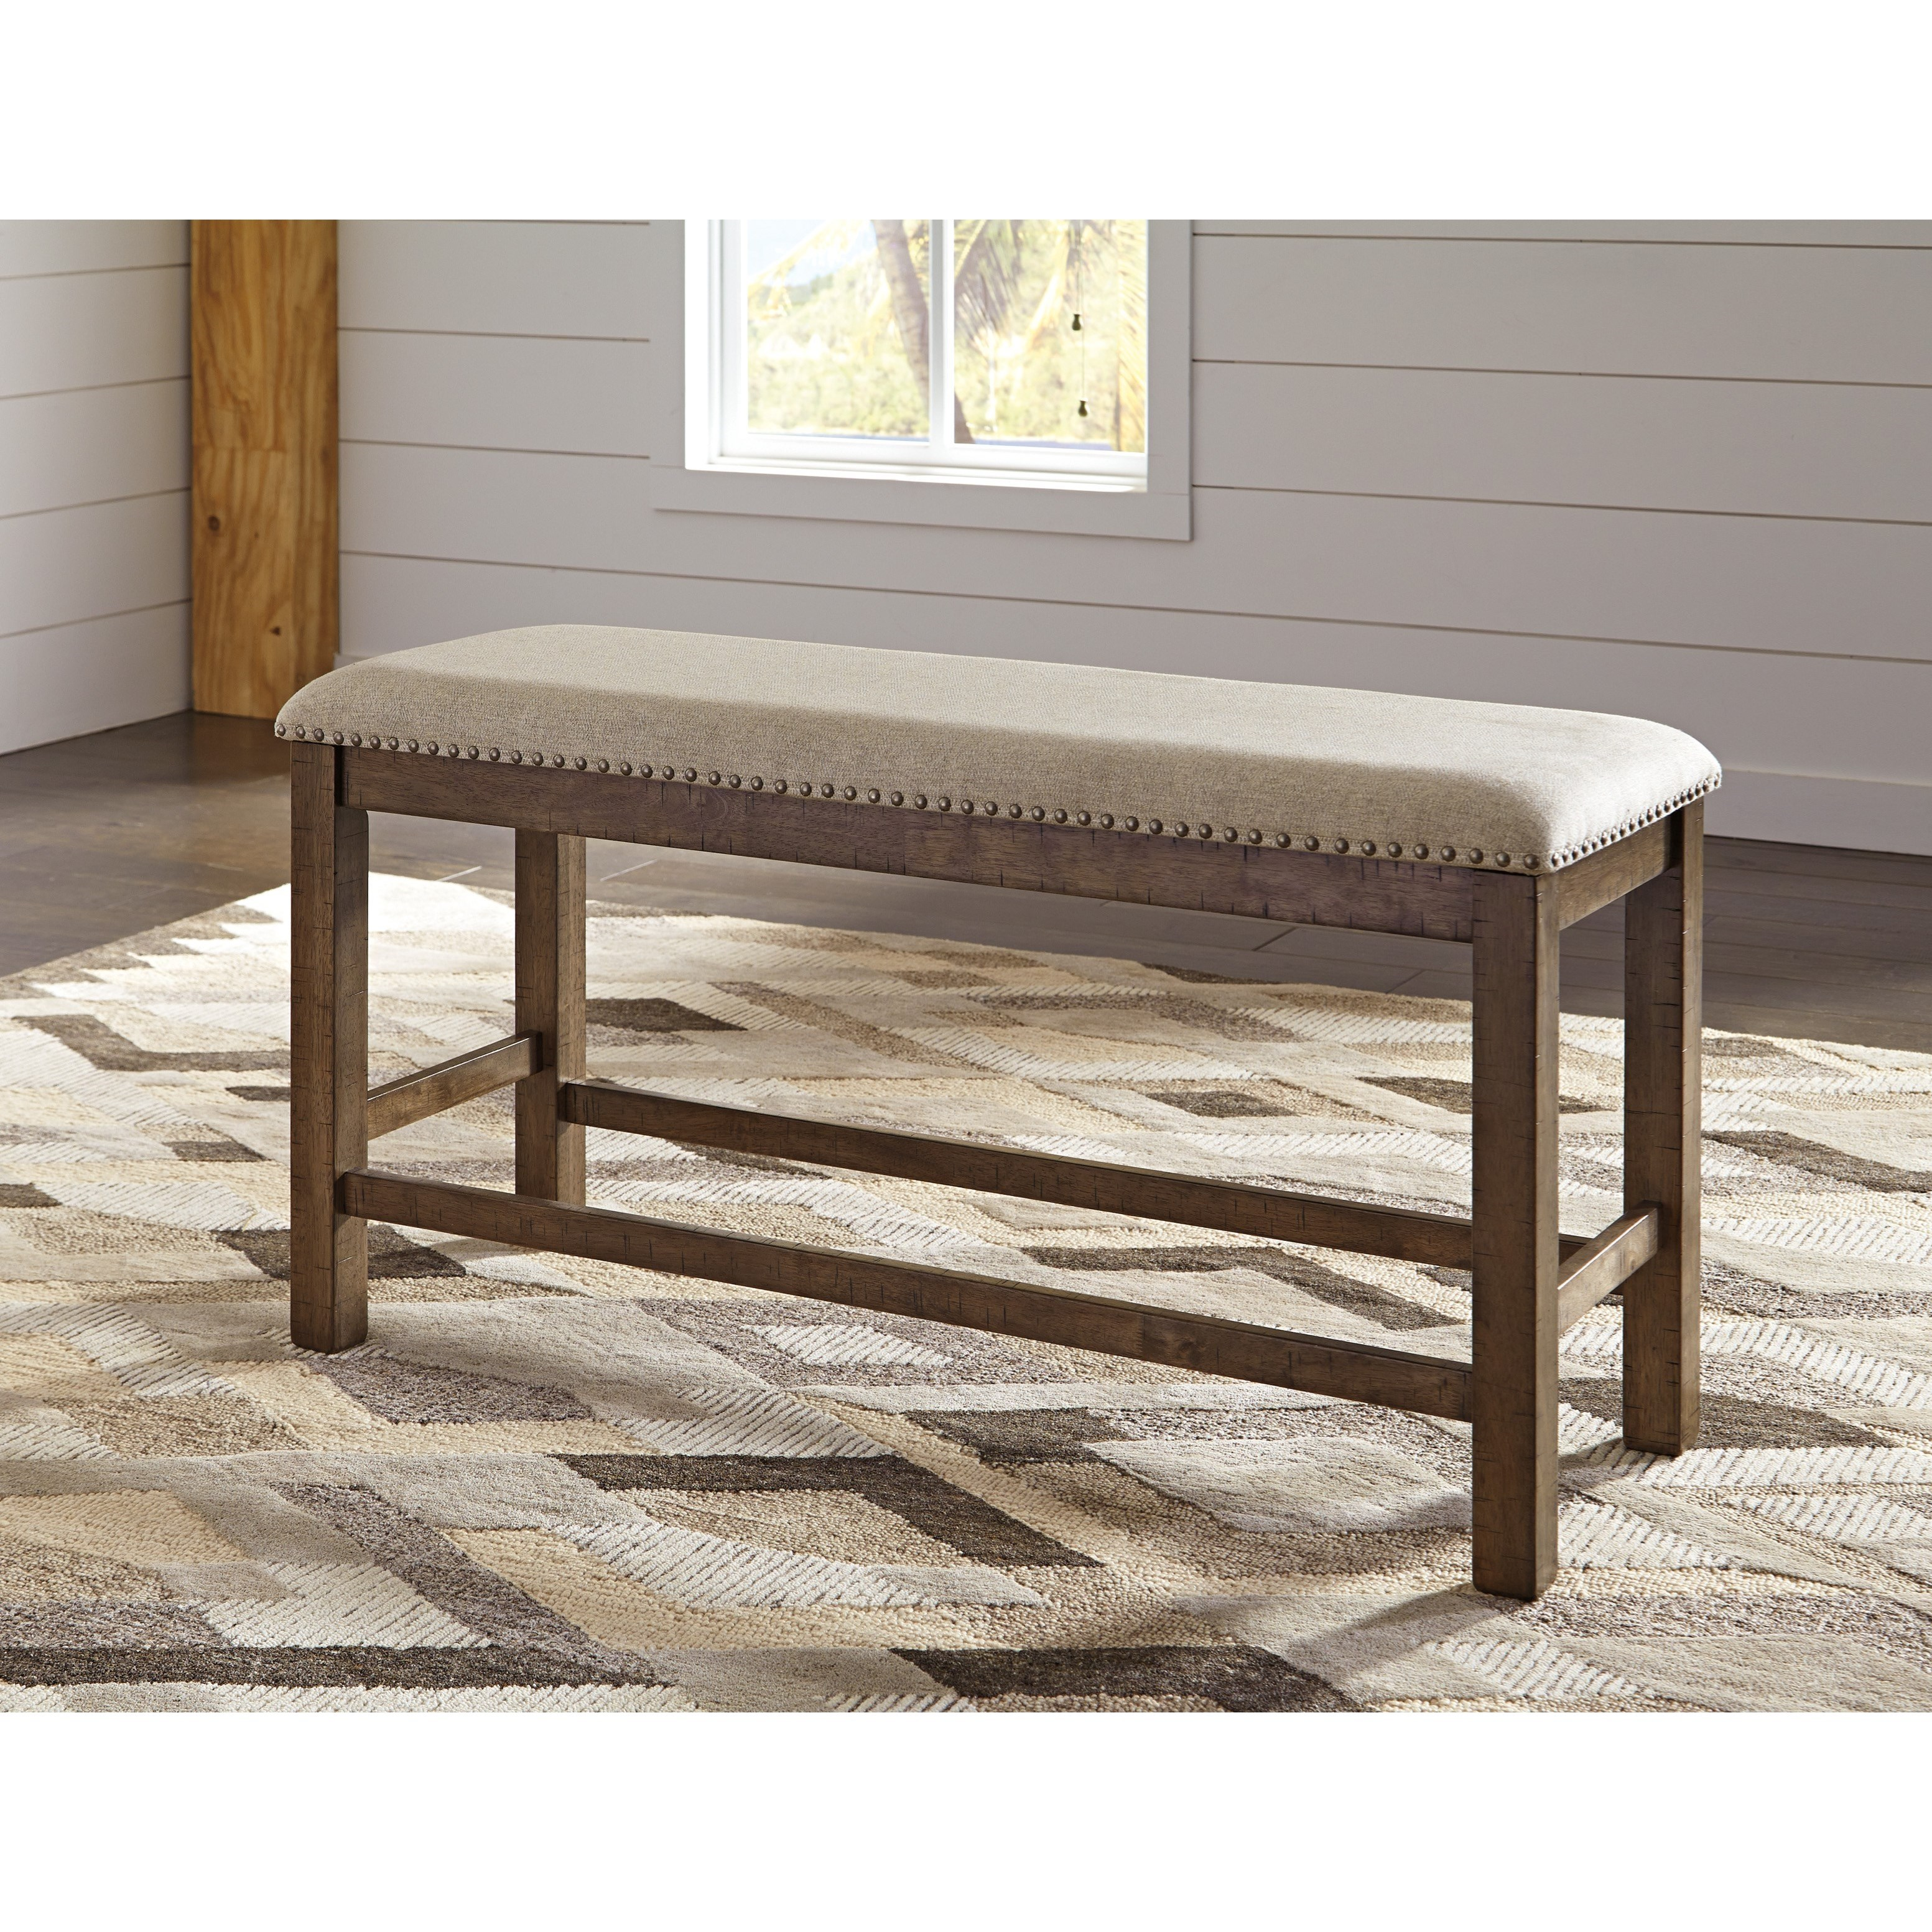 Signature Design By Ashley Moriville Double Upholstered Bench Royal Furniture Dining Benches